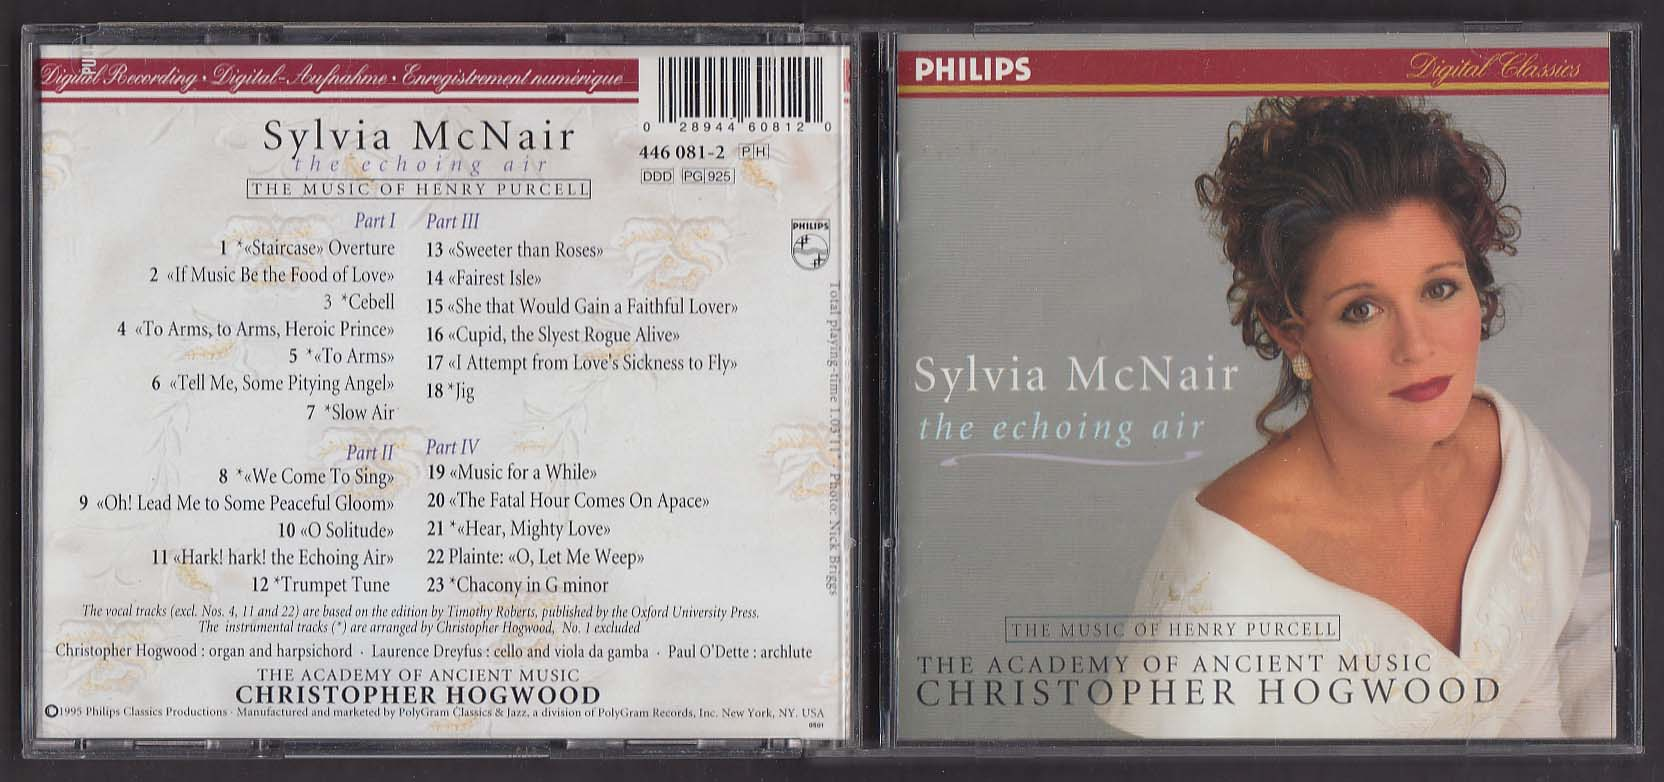 Image for Sylvia McNair: The Echoing Air Music of Henry Purcell Philips CD 1995